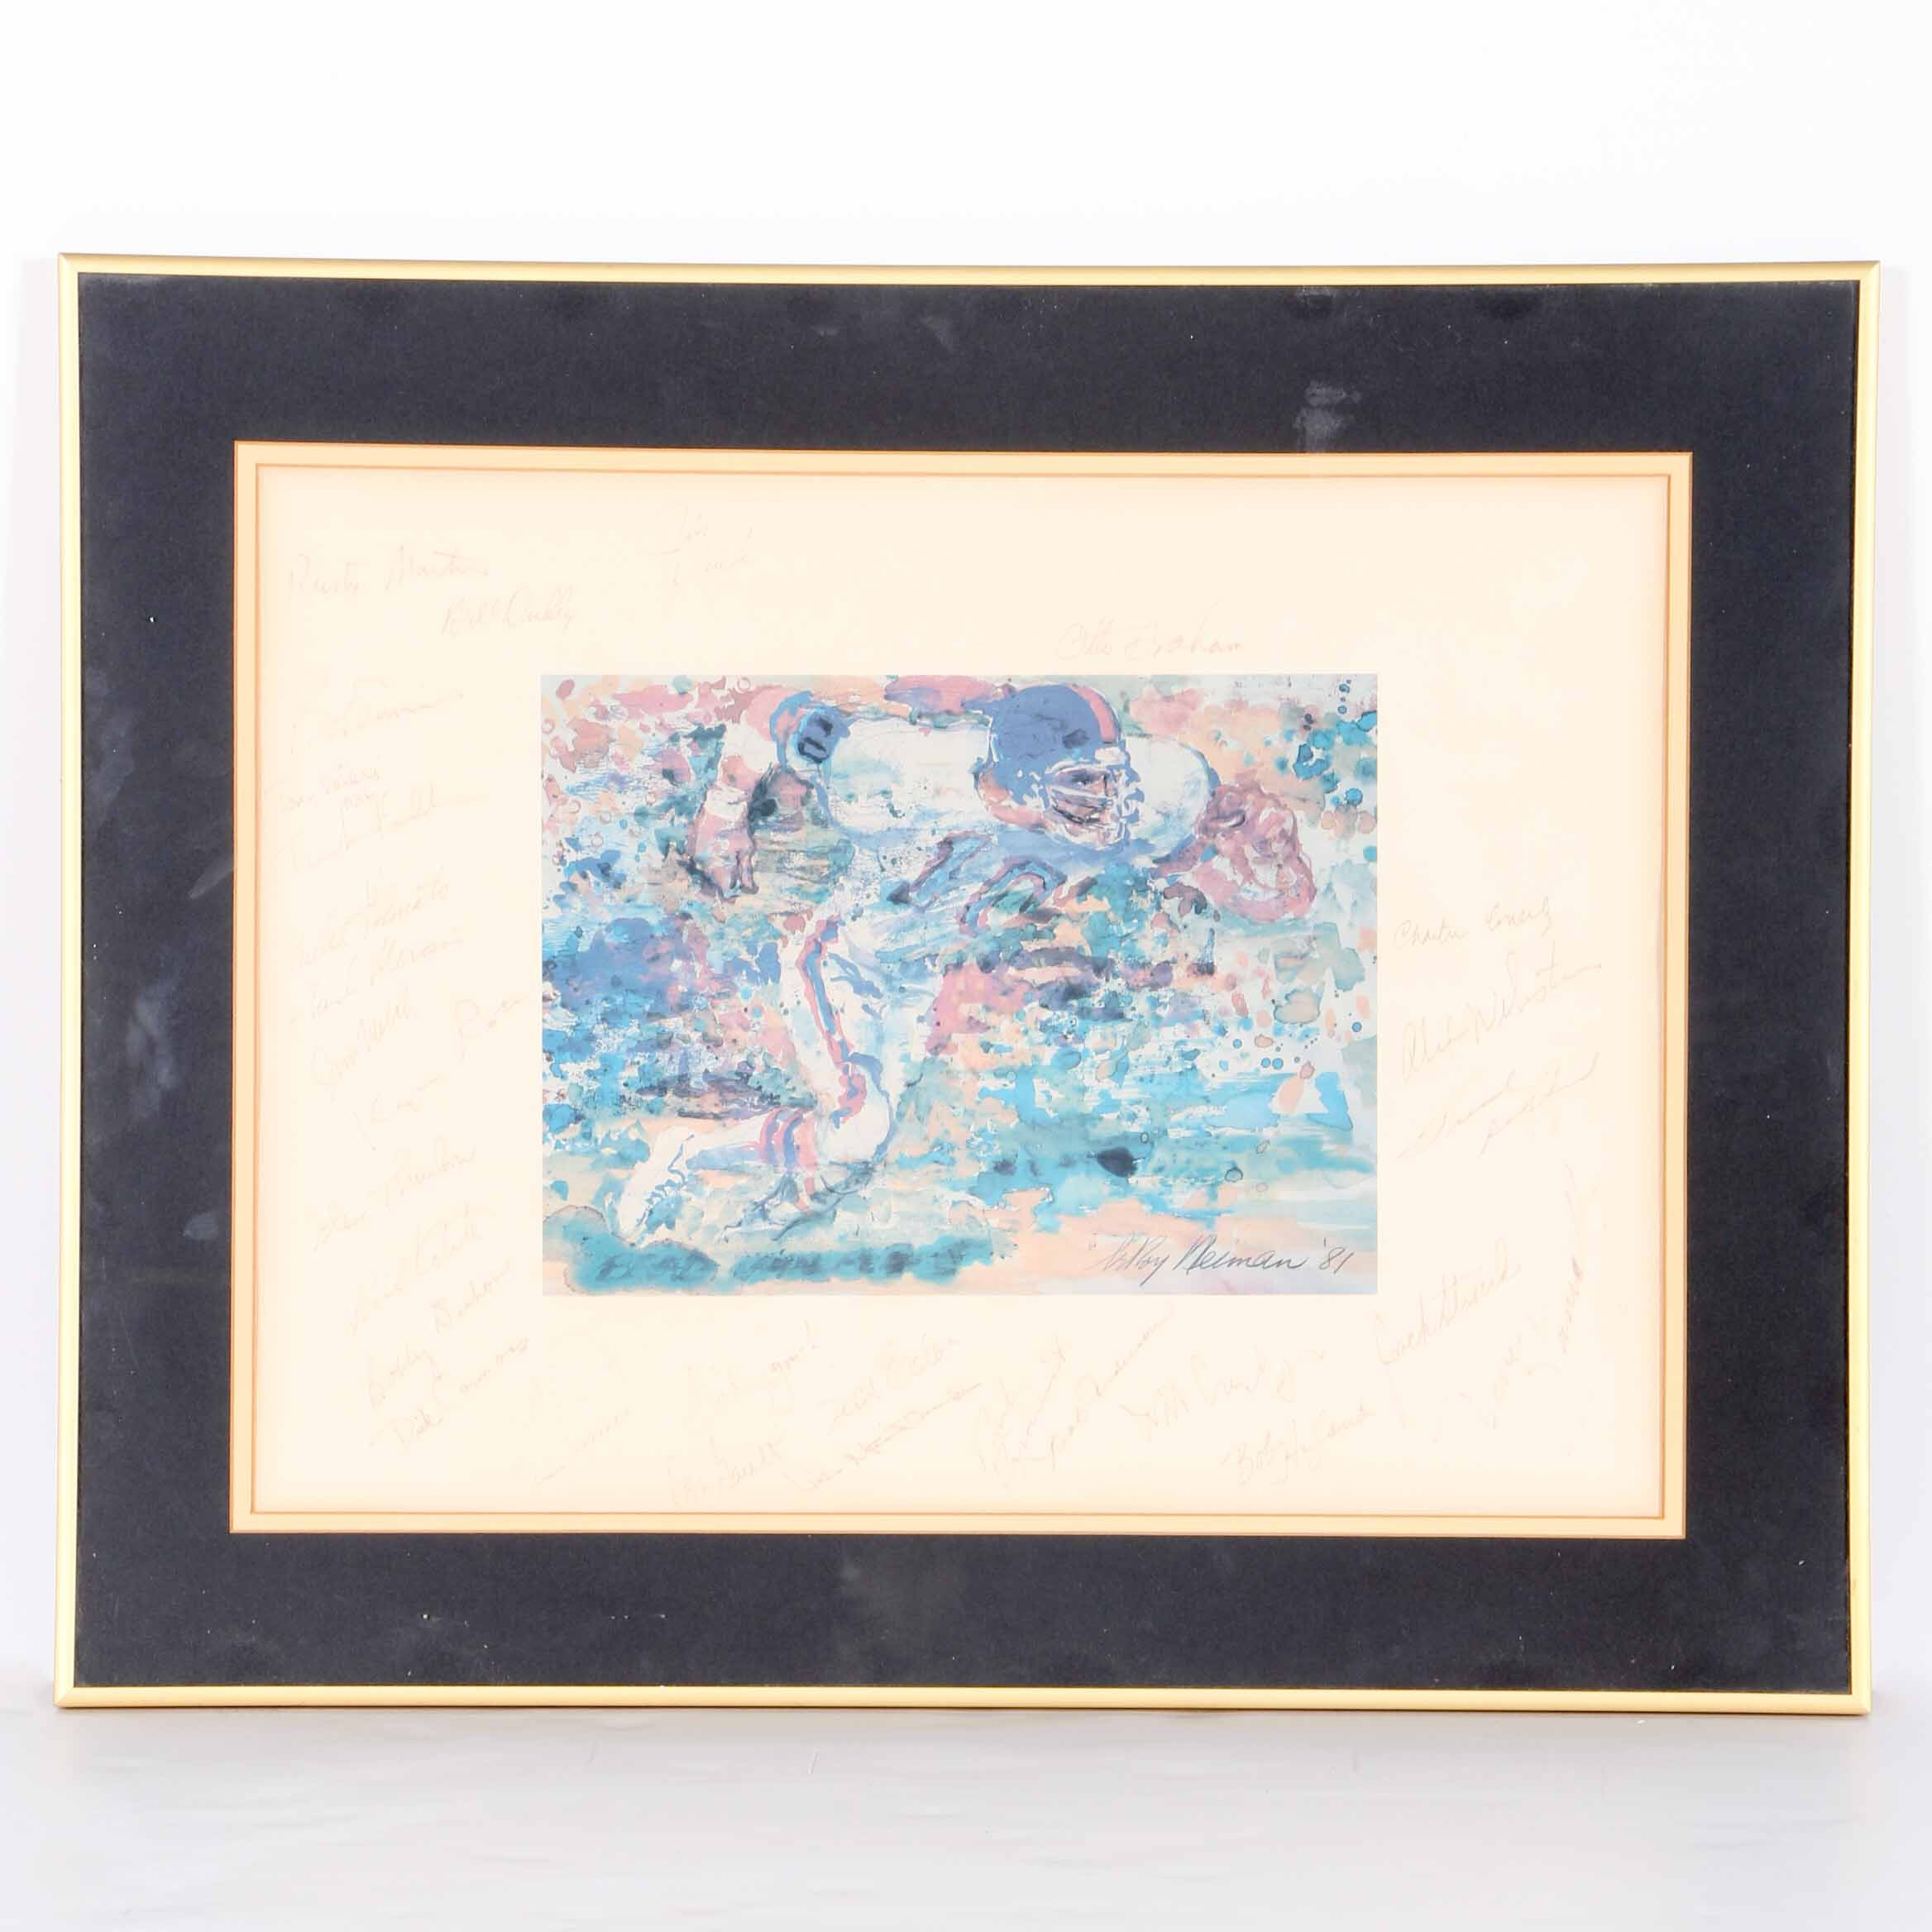 Leroy Neiman Offset Lithograph Print with Football Players Signatures